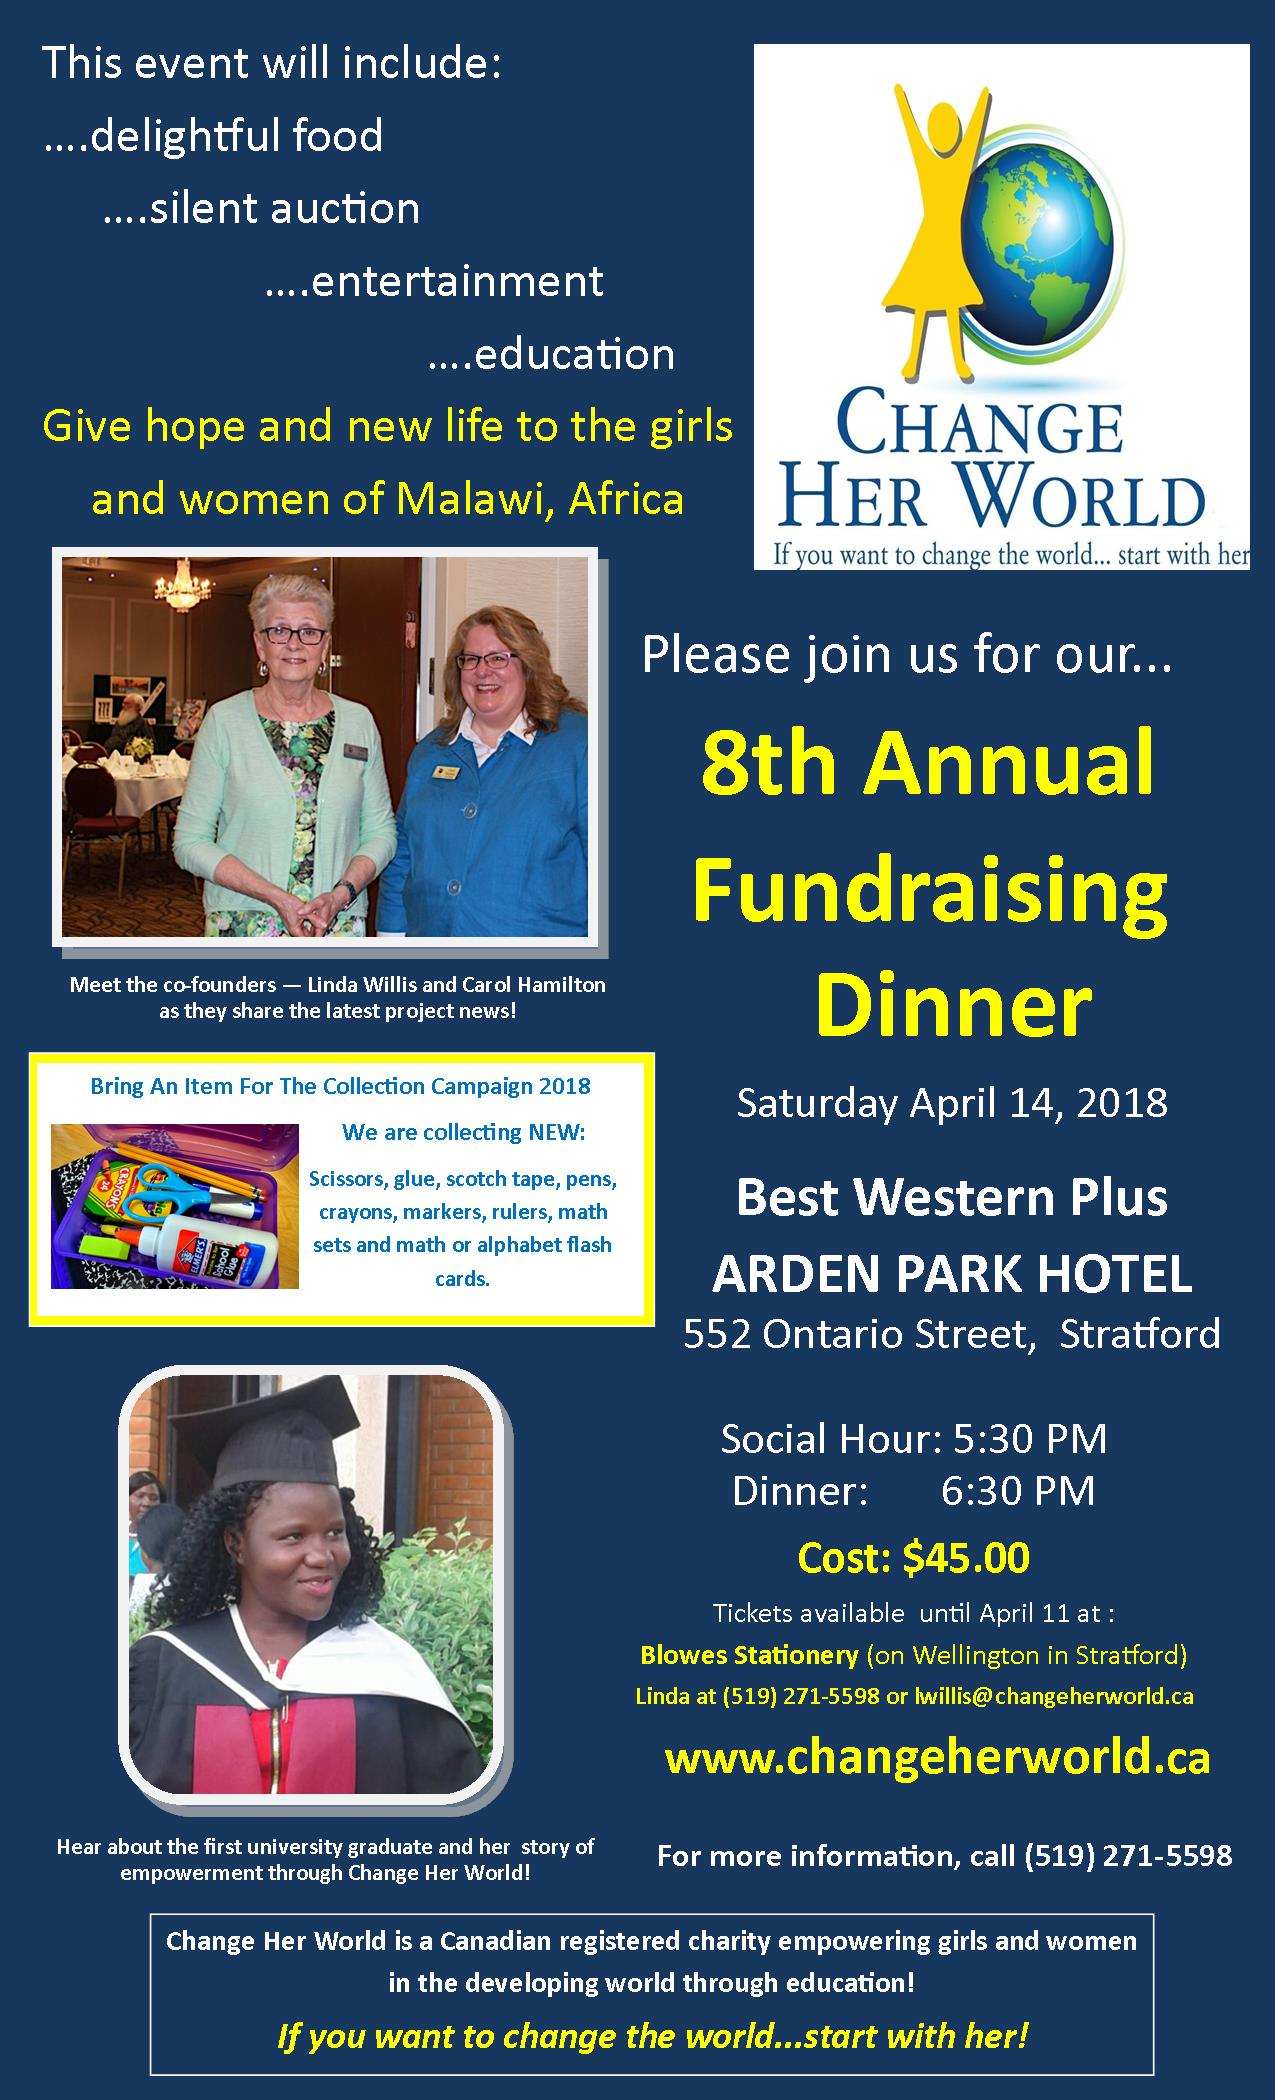 Annual Fundraising Dinner: April 14 2018